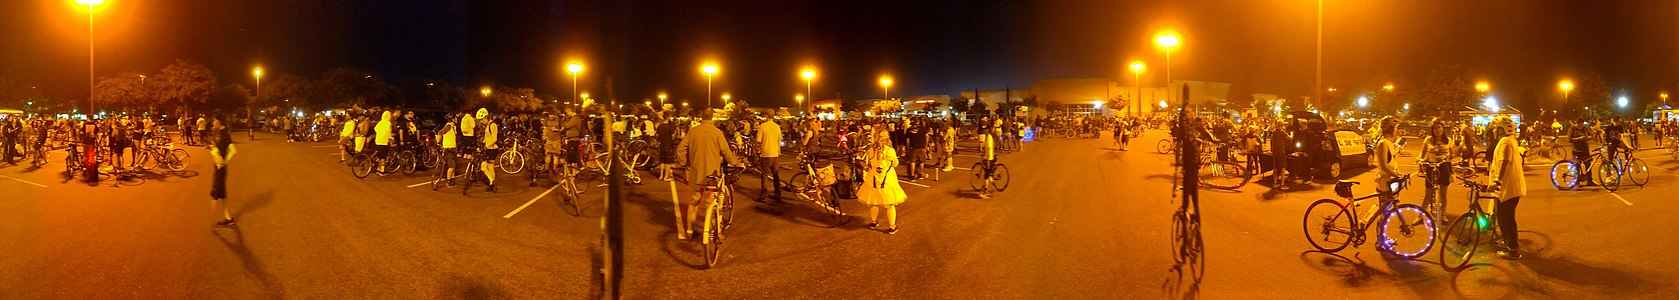 panorama of San Jose Bike Party including crowd with lots of bicycles at a regroup point on June 21, 2019